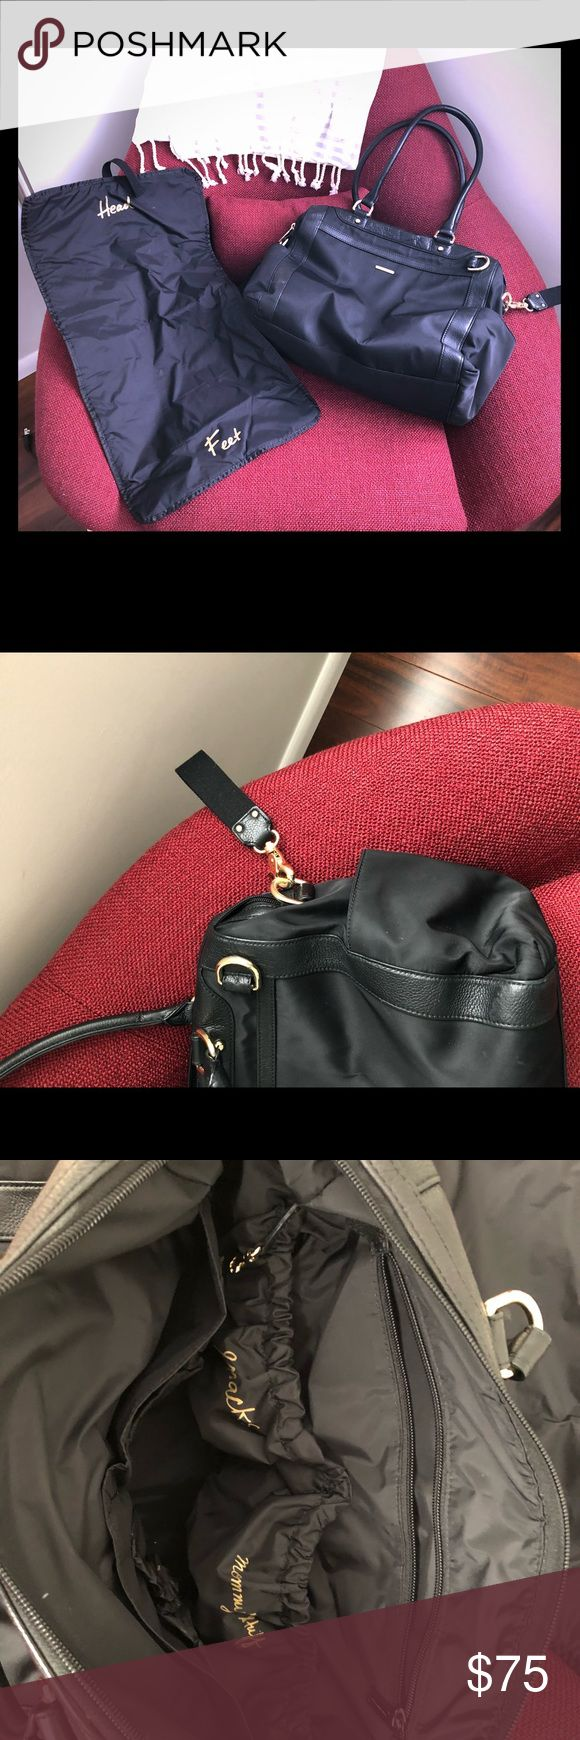 Rebecca Minkoff Diaper Bag Gently used beautiful diaper bag with changing pad. Also has stroller straps. Rebecca Minkoff Bags Baby Bags